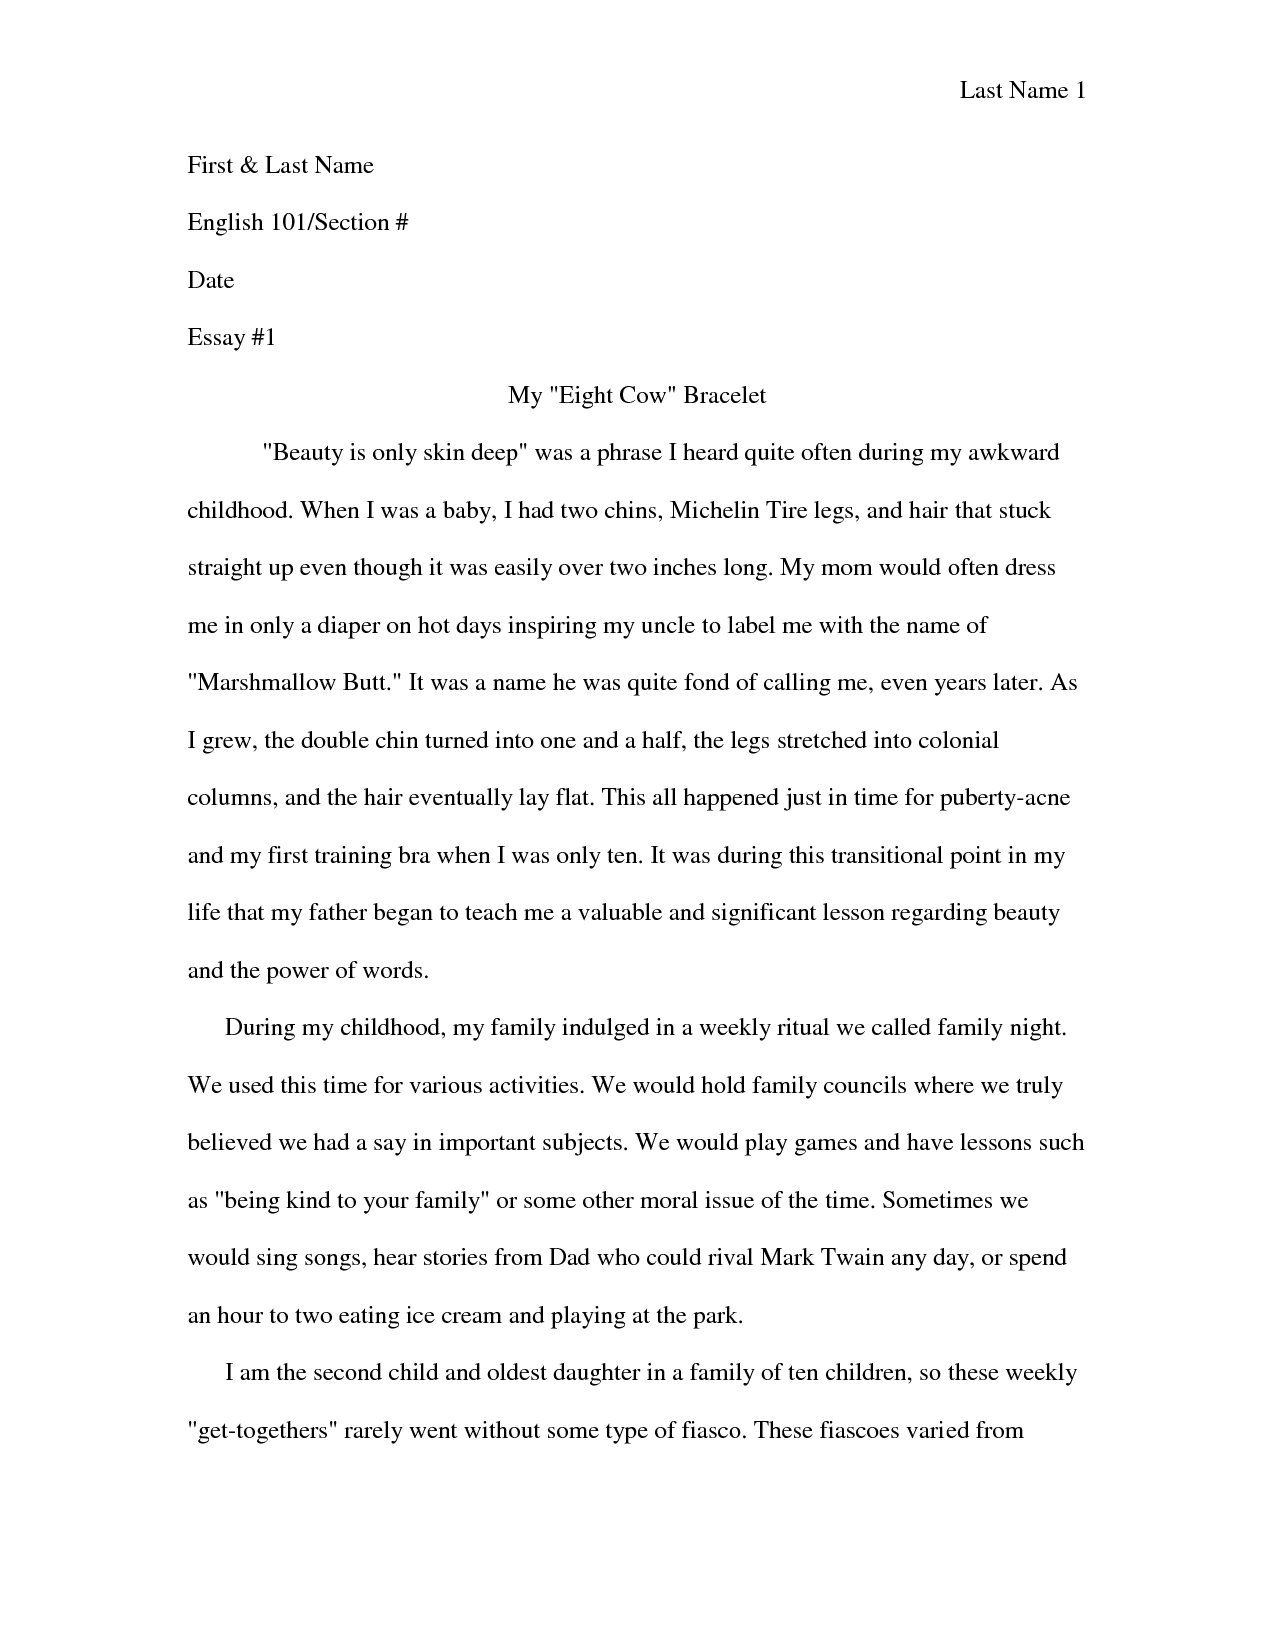 Parents Are The Best Teachers Essay Toefl